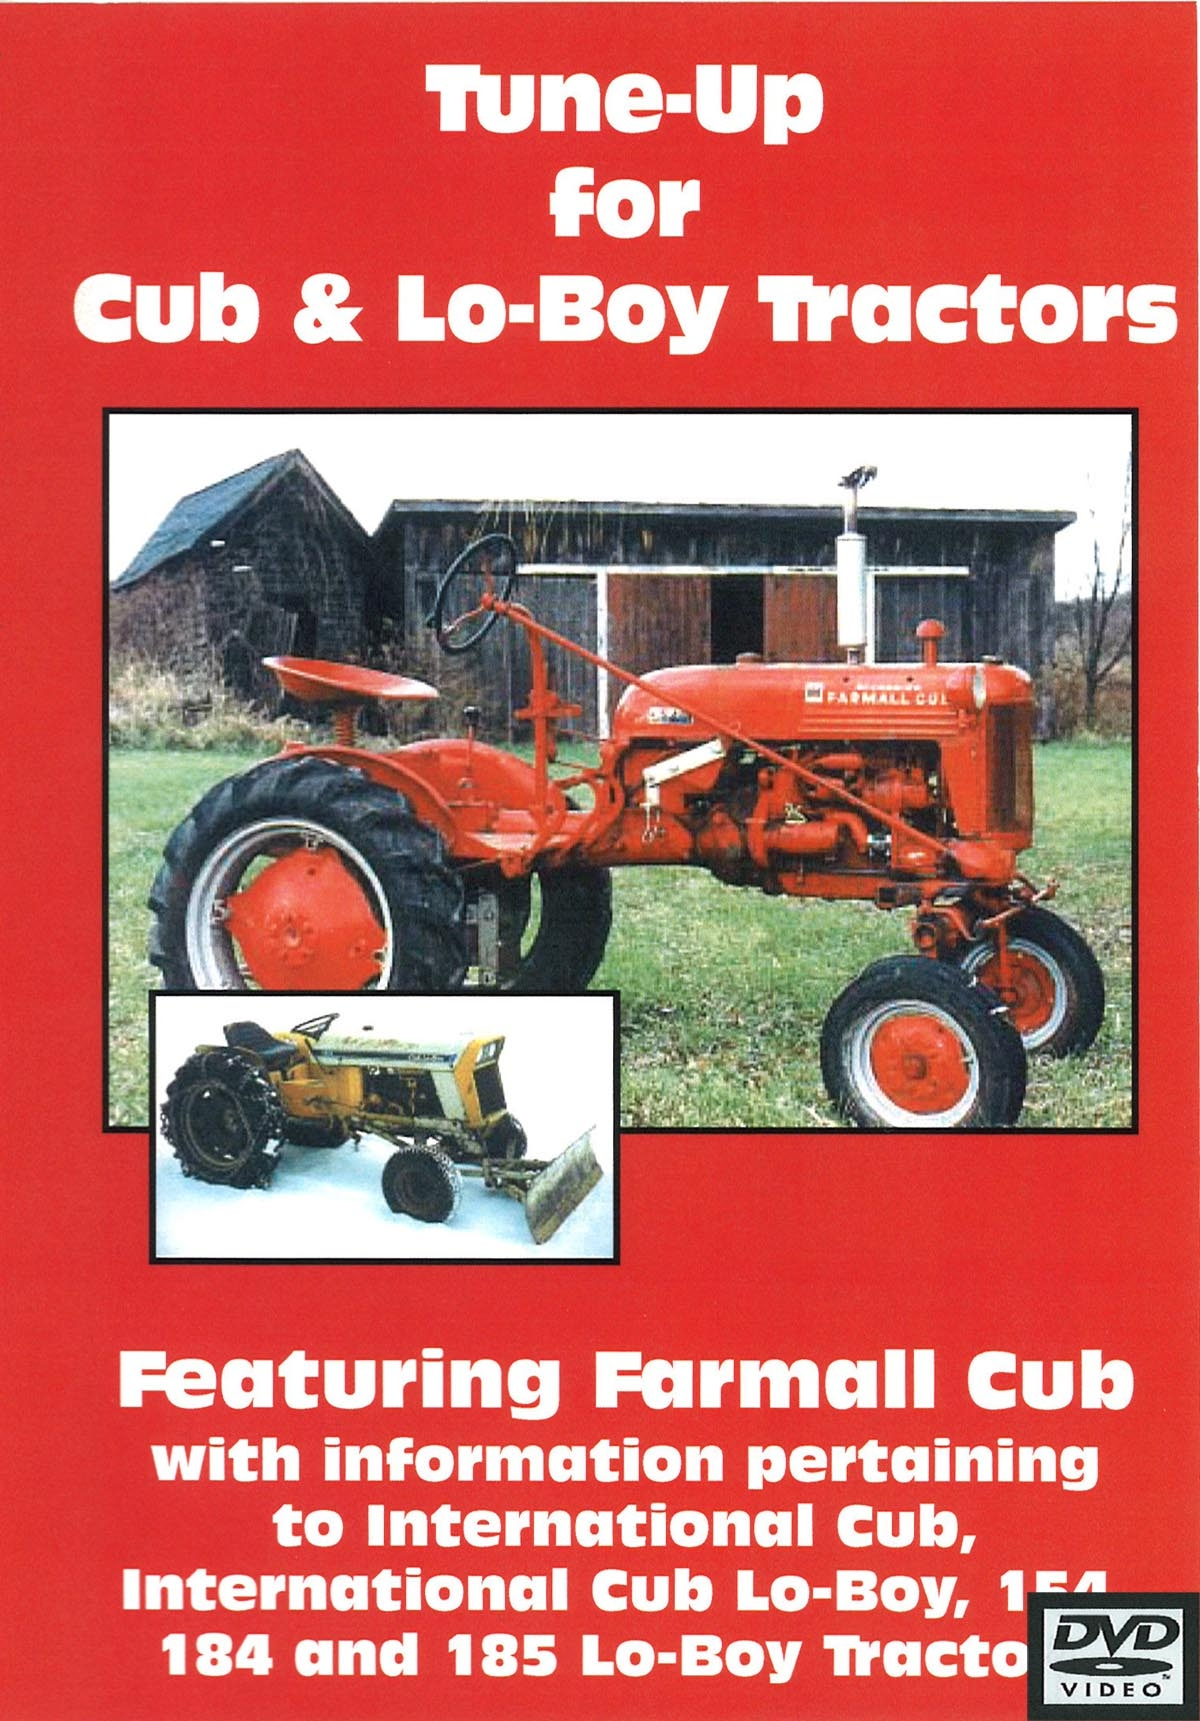 CUB & CUB LO-BOY TUNE UP VIDEO (DVD)